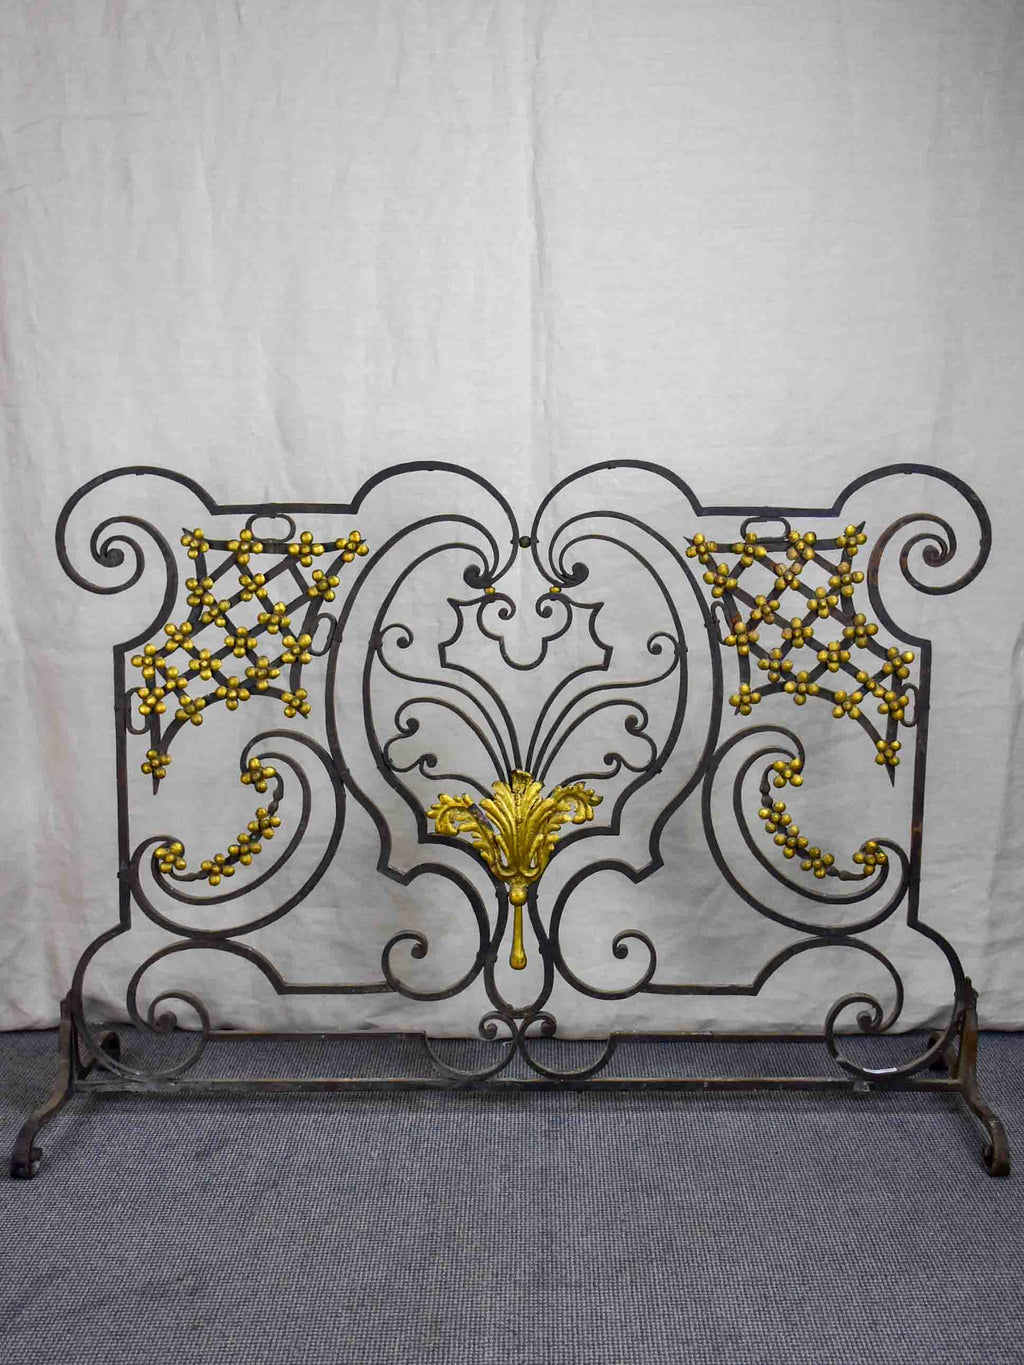 Wrought iron fire screen with flowers